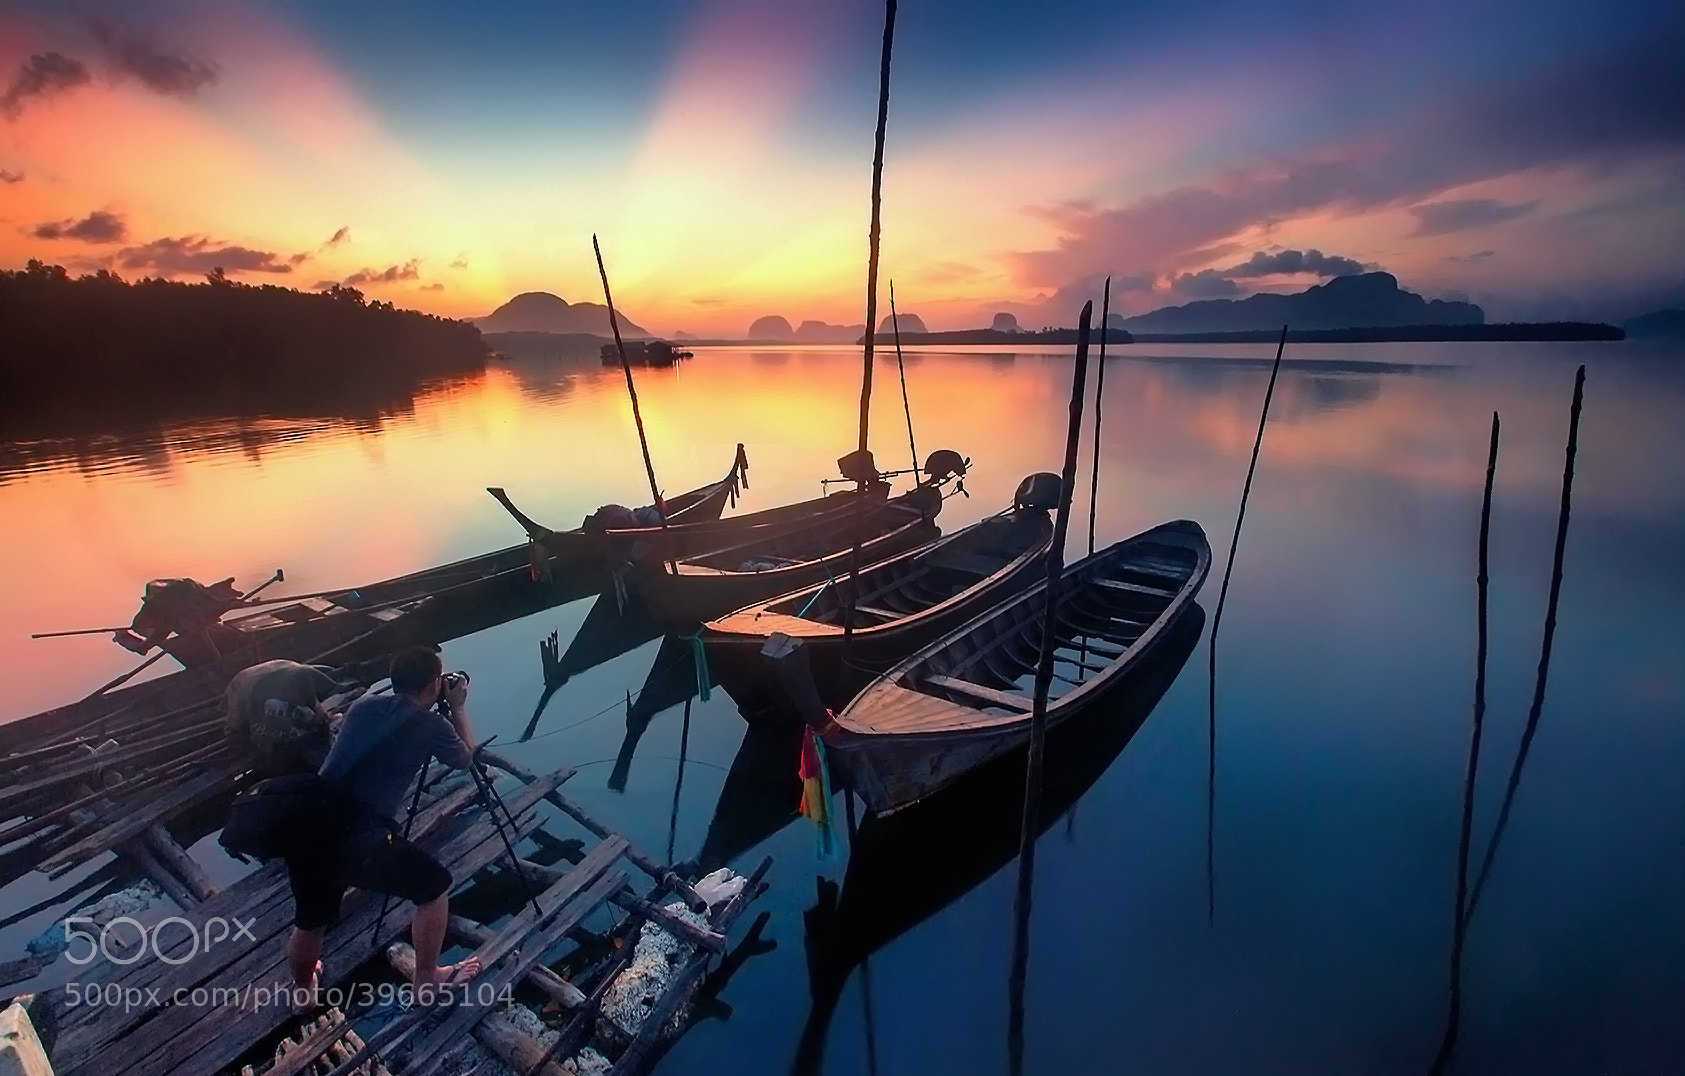 Photograph Into the new day by Wazabi Bomb Bomb on 500px